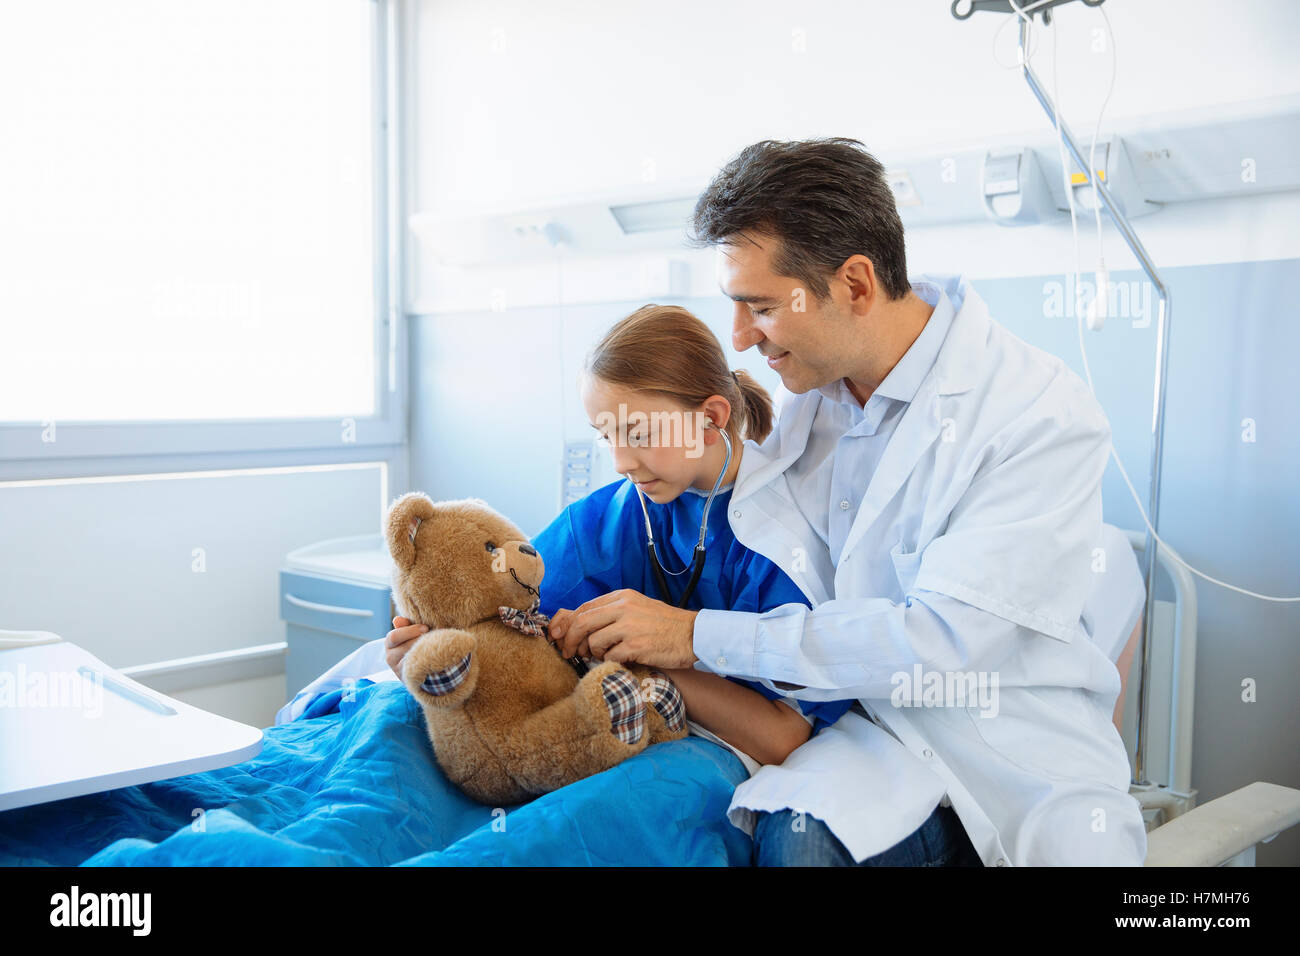 Doctor and girl patient examining a teddy bear - Stock Image